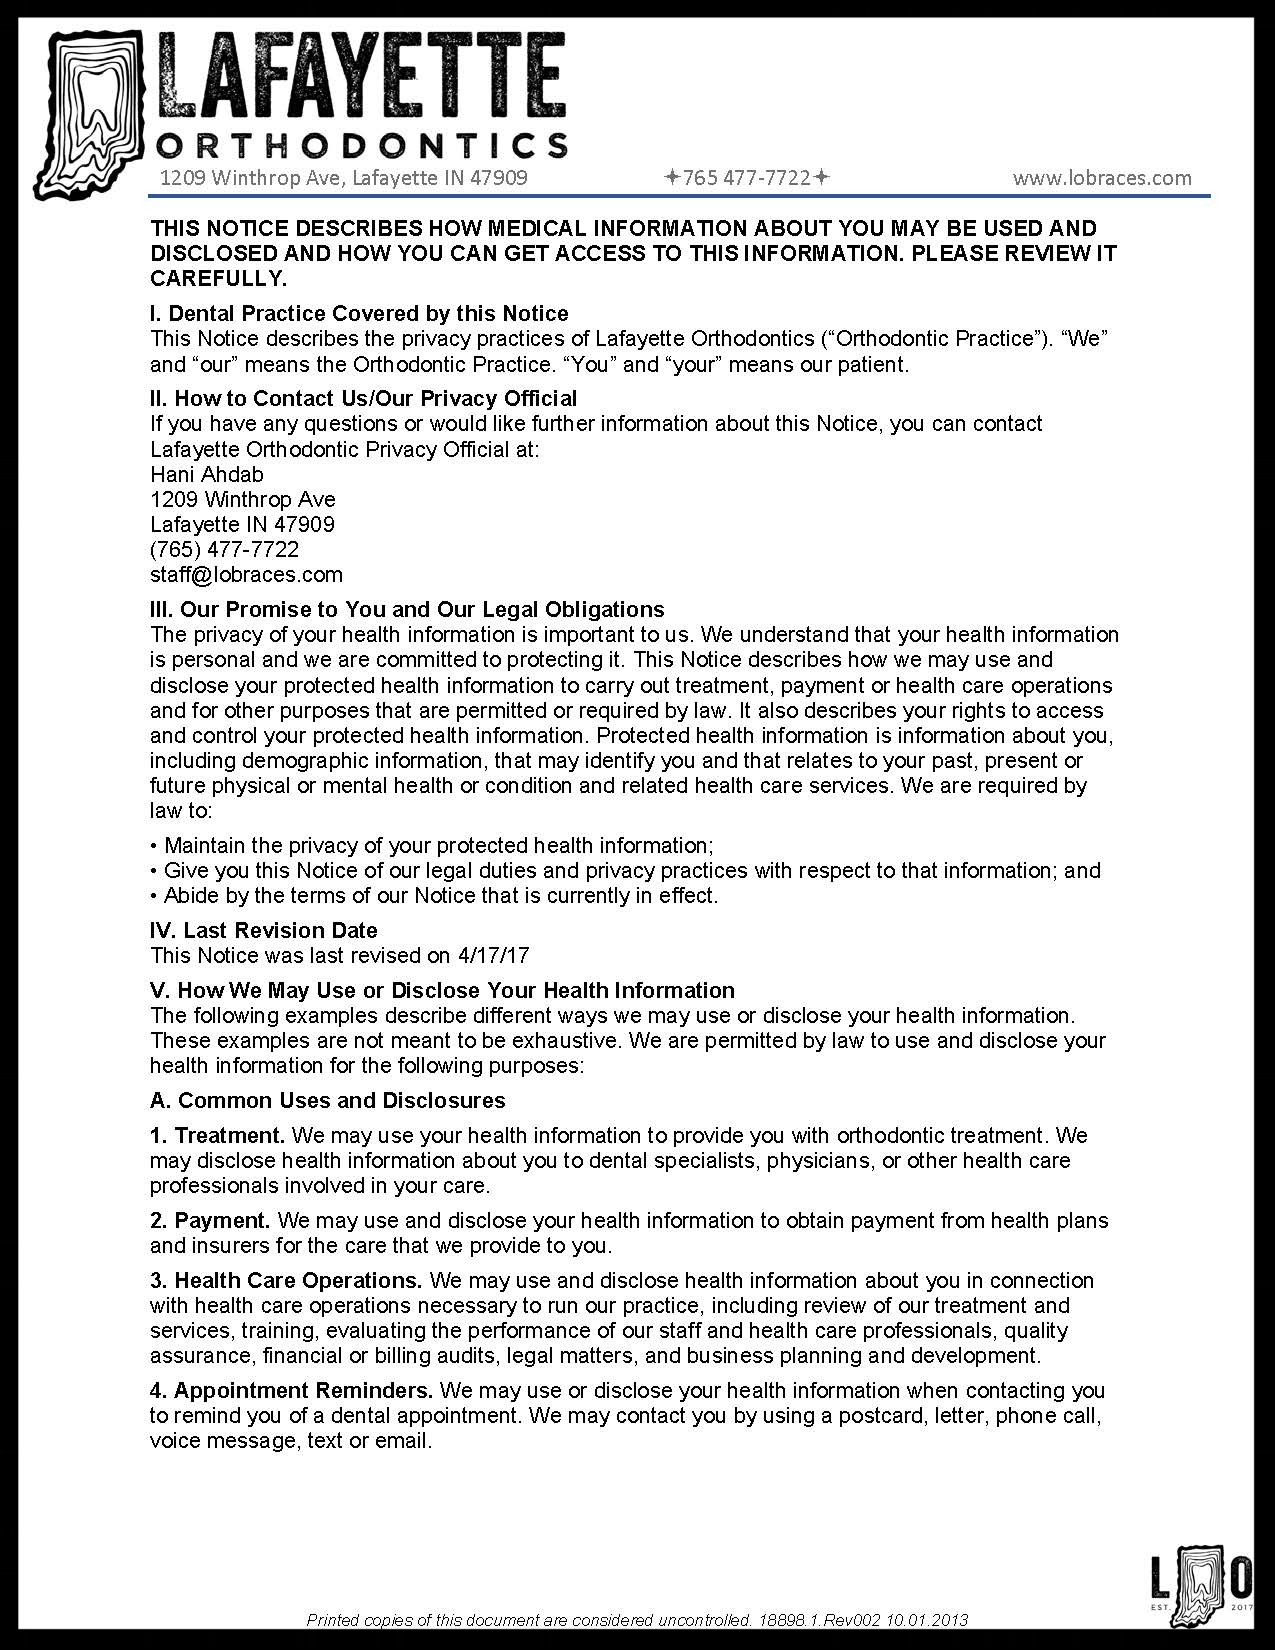 HIPPA- PLEASE READ AND SIGN HIPPA ACKNOWLEDGEMENT FORM